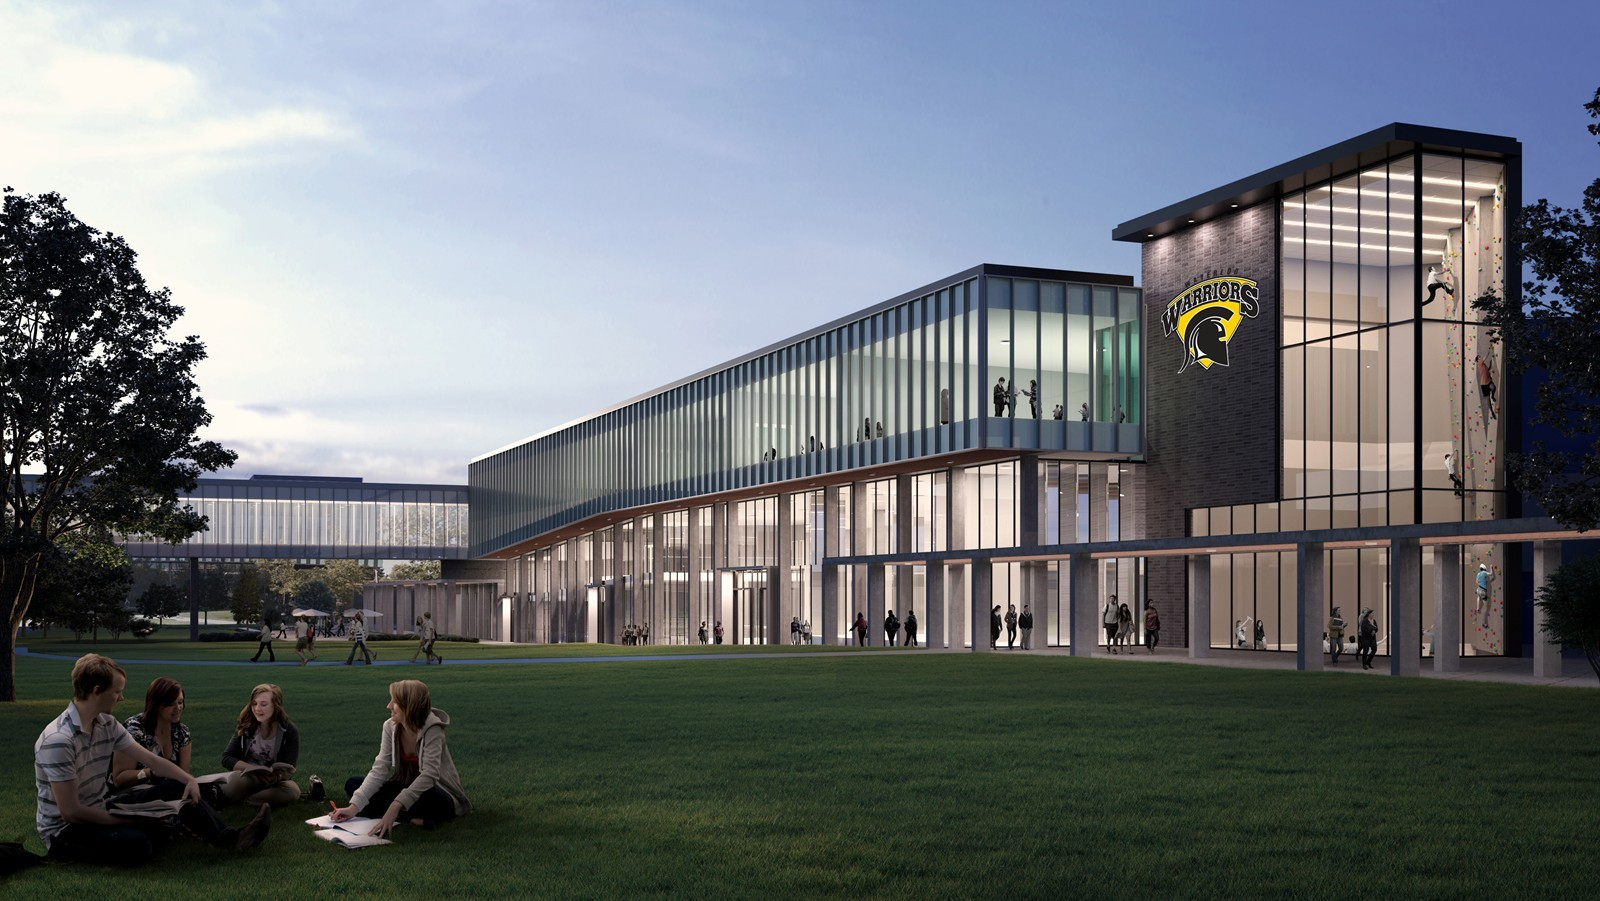 University Of Waterloo: University Of Waterloo Set To Enhance Recreation